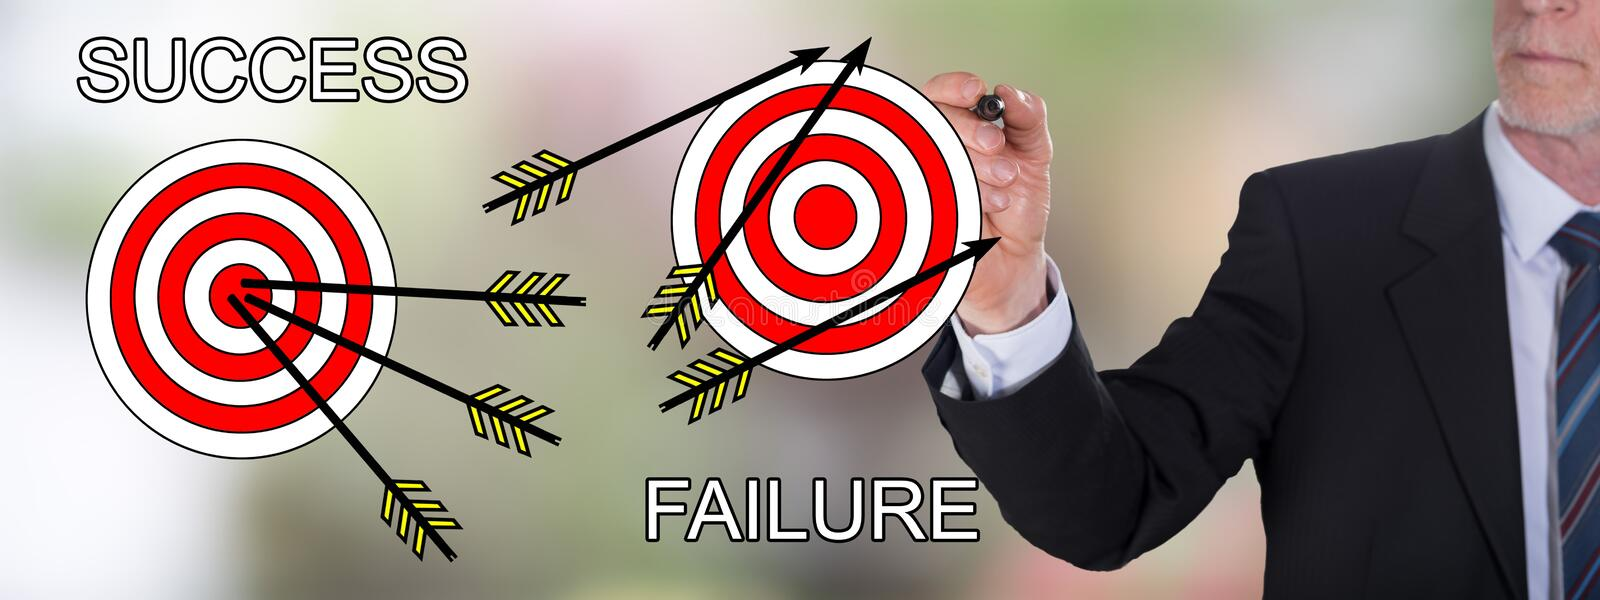 Success and failure concept drawn by a businessman royalty free stock photos